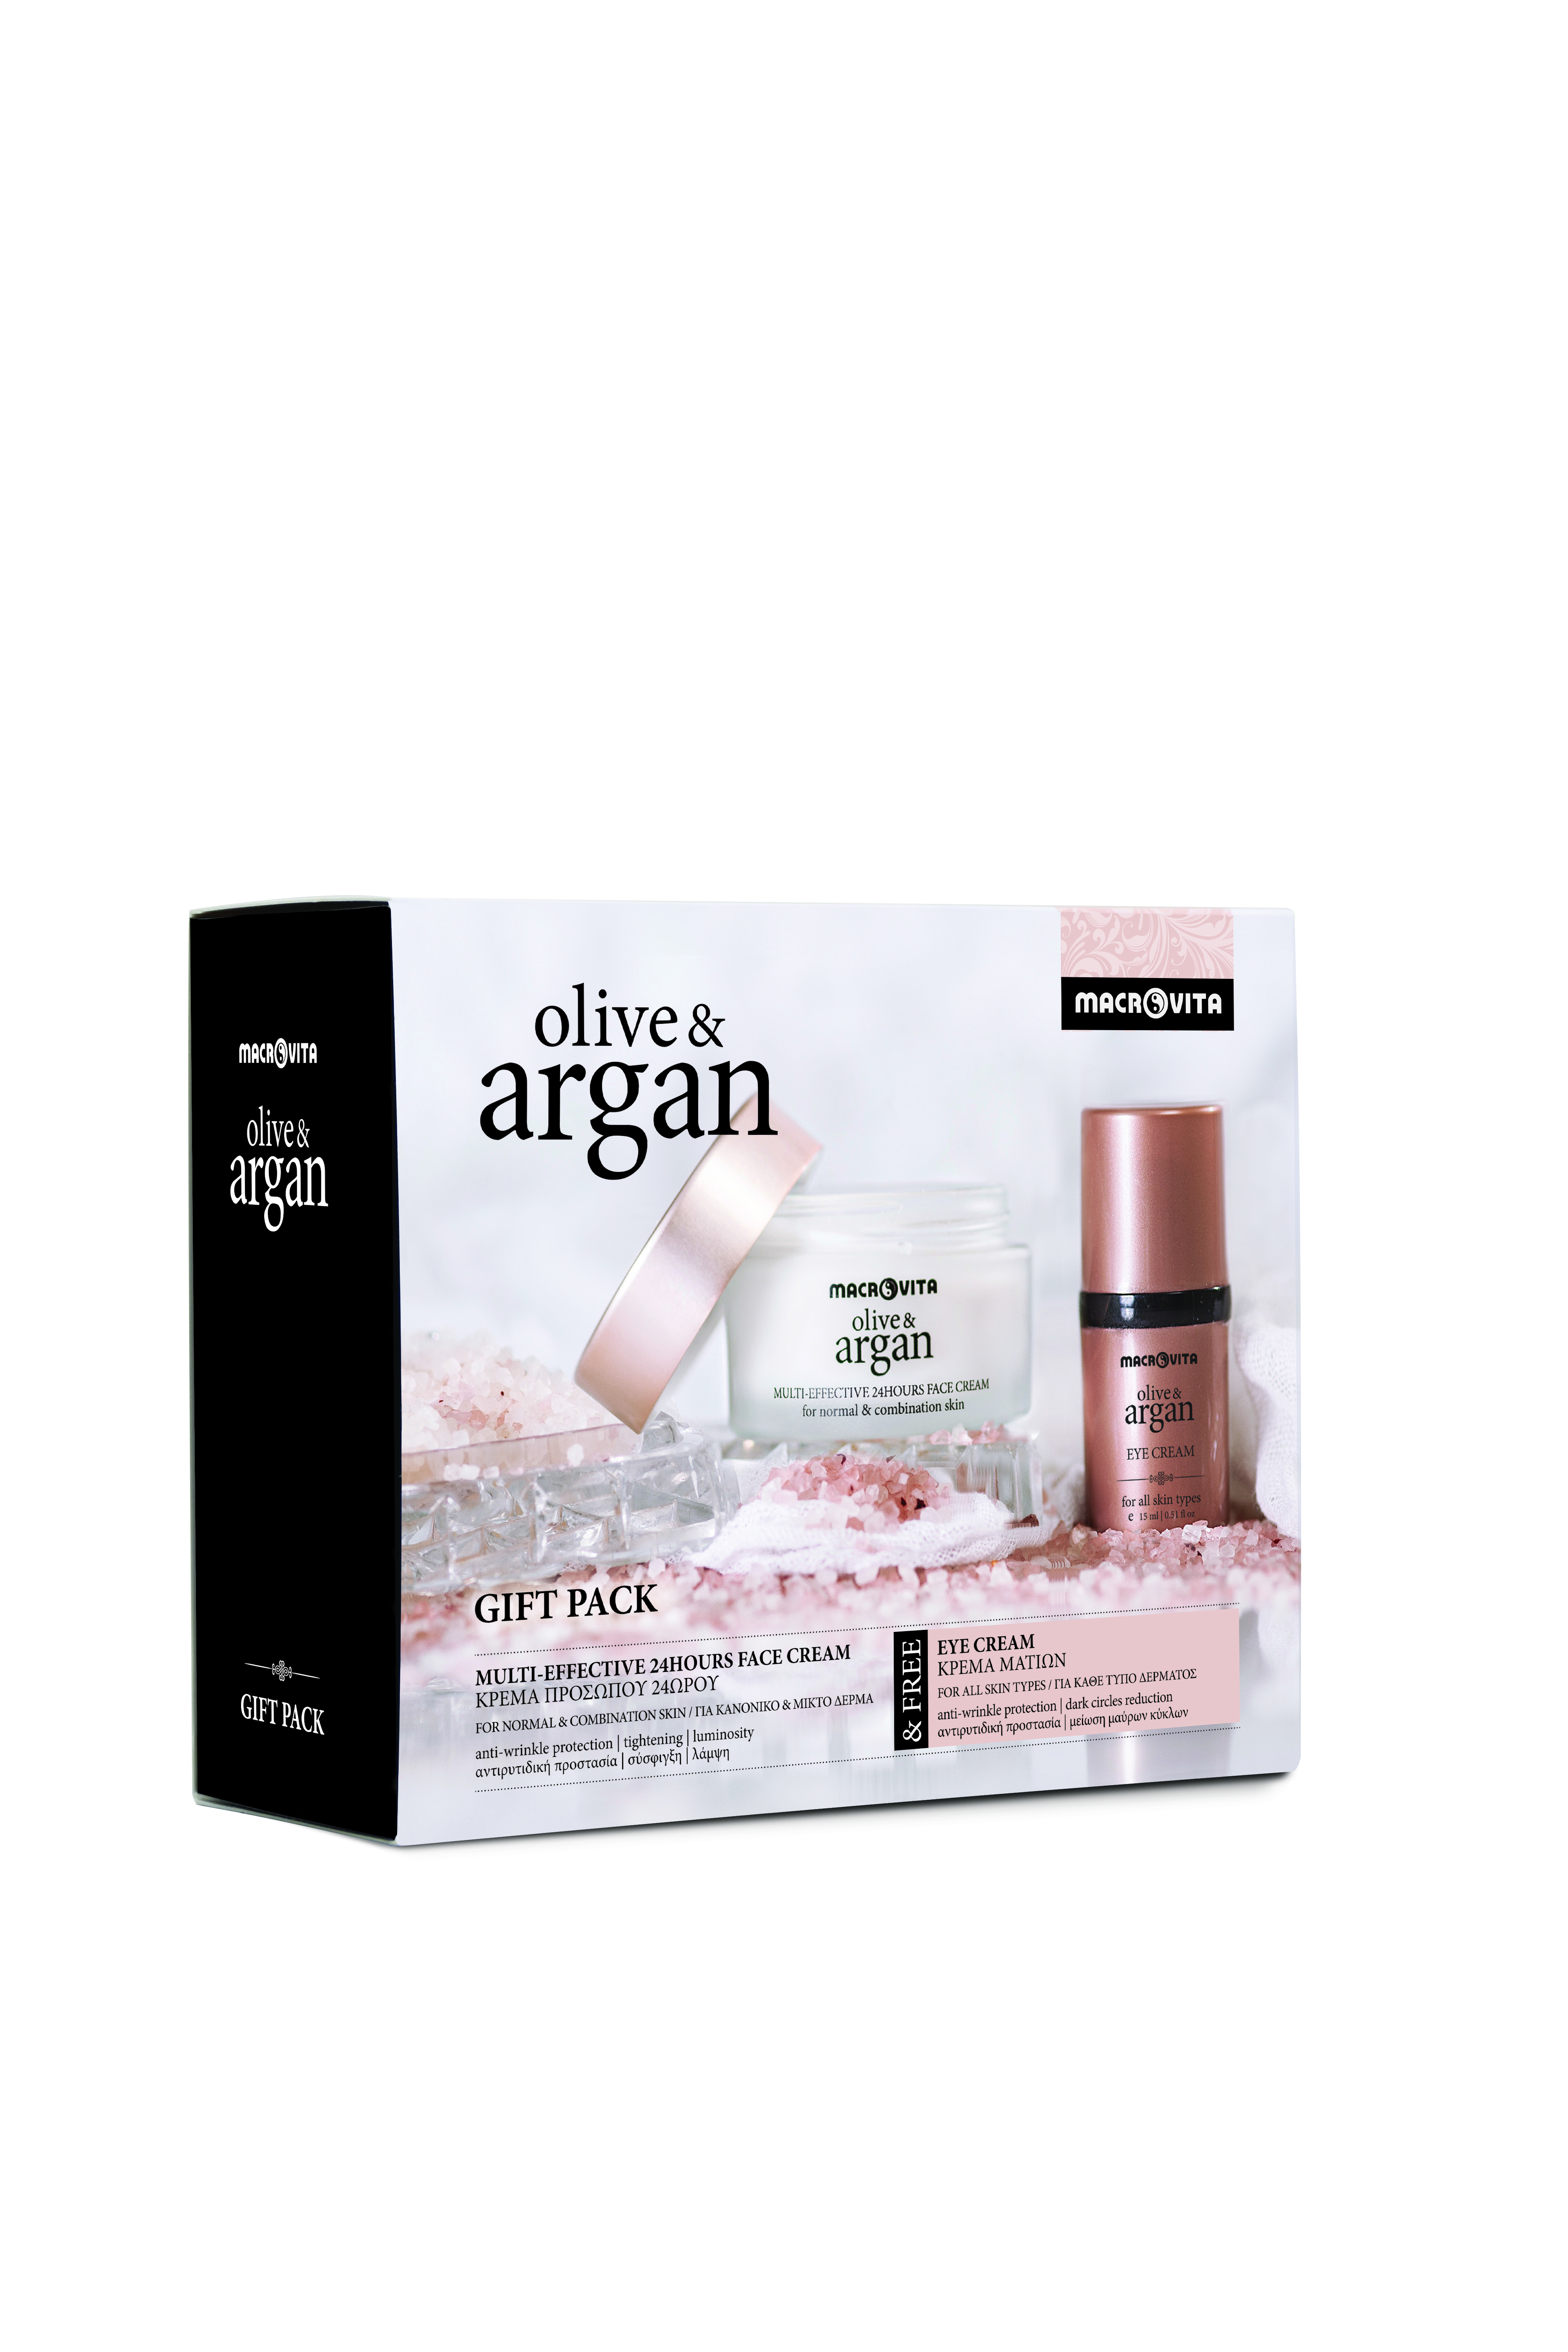 O & A GIFT SET NORMAL Cream+ Eye cream+